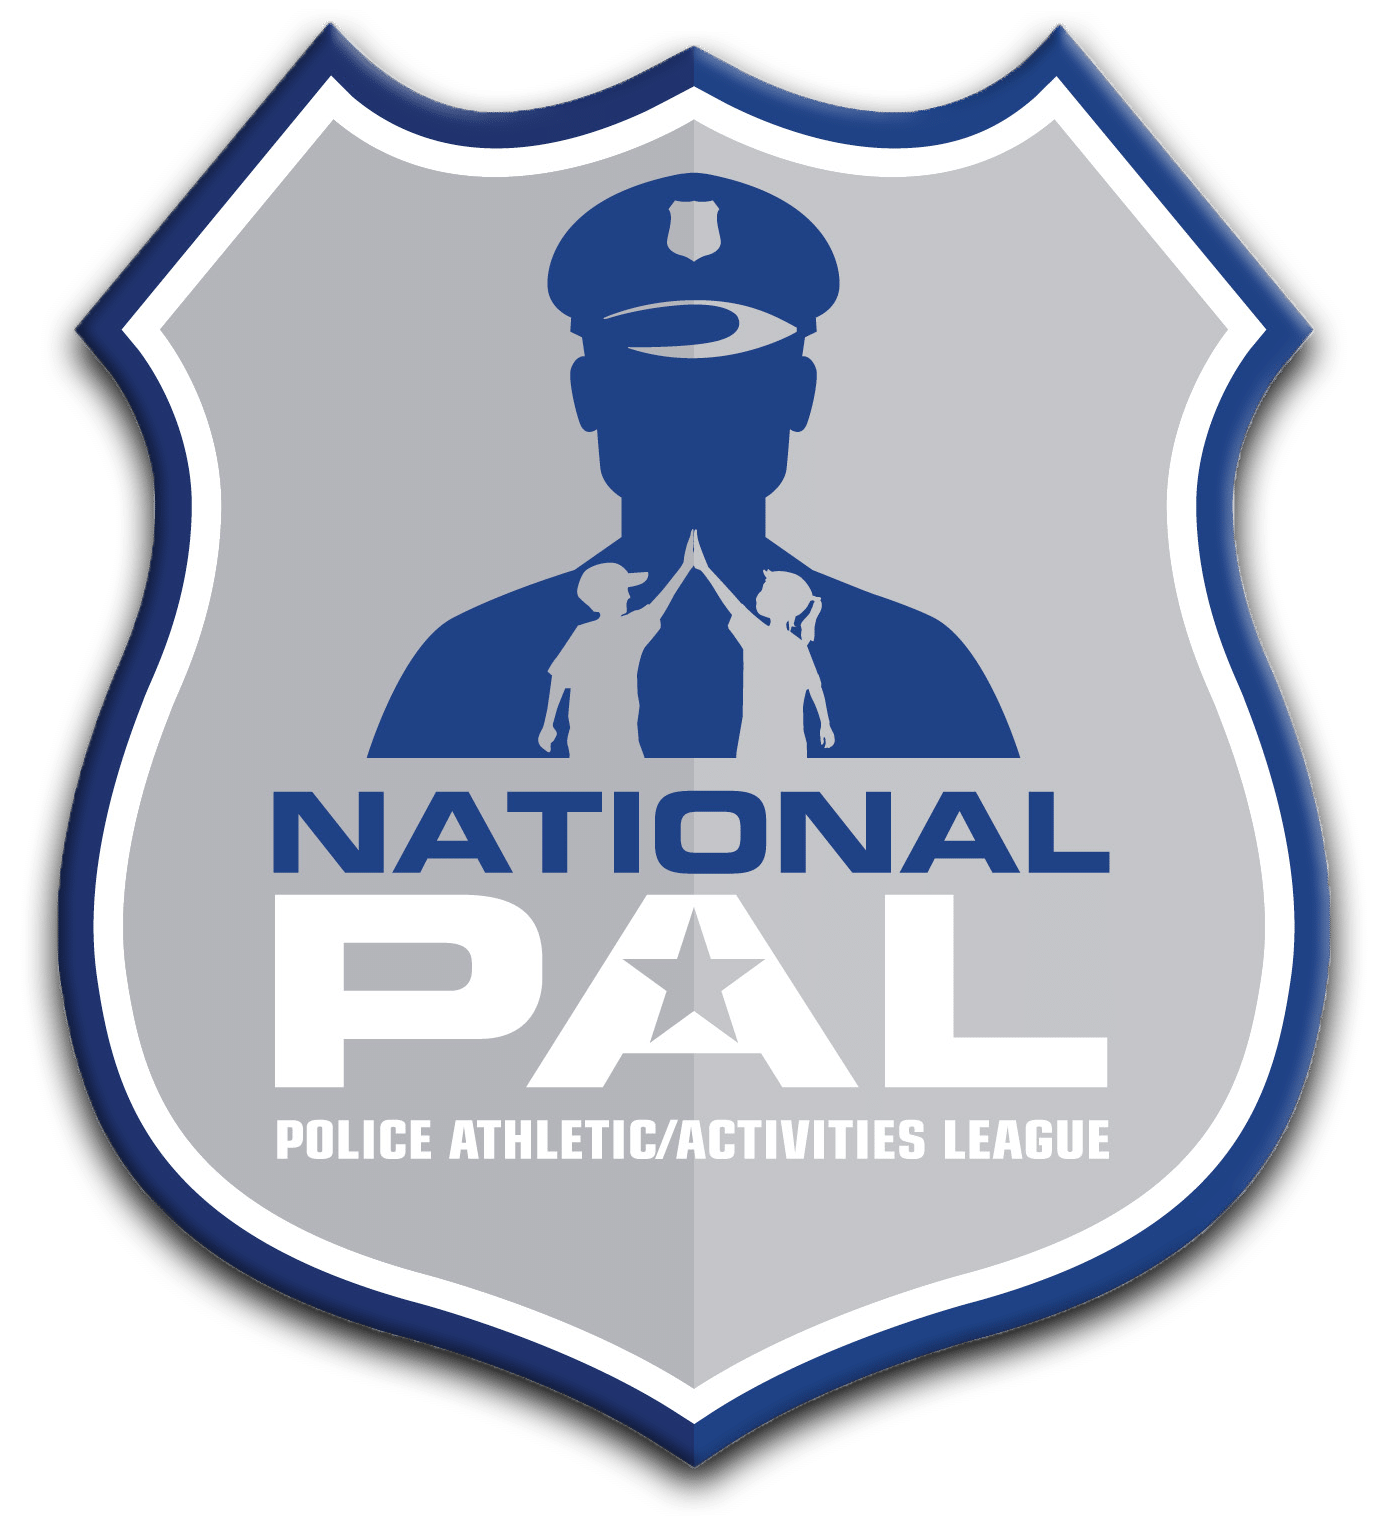 nationalPALlogo